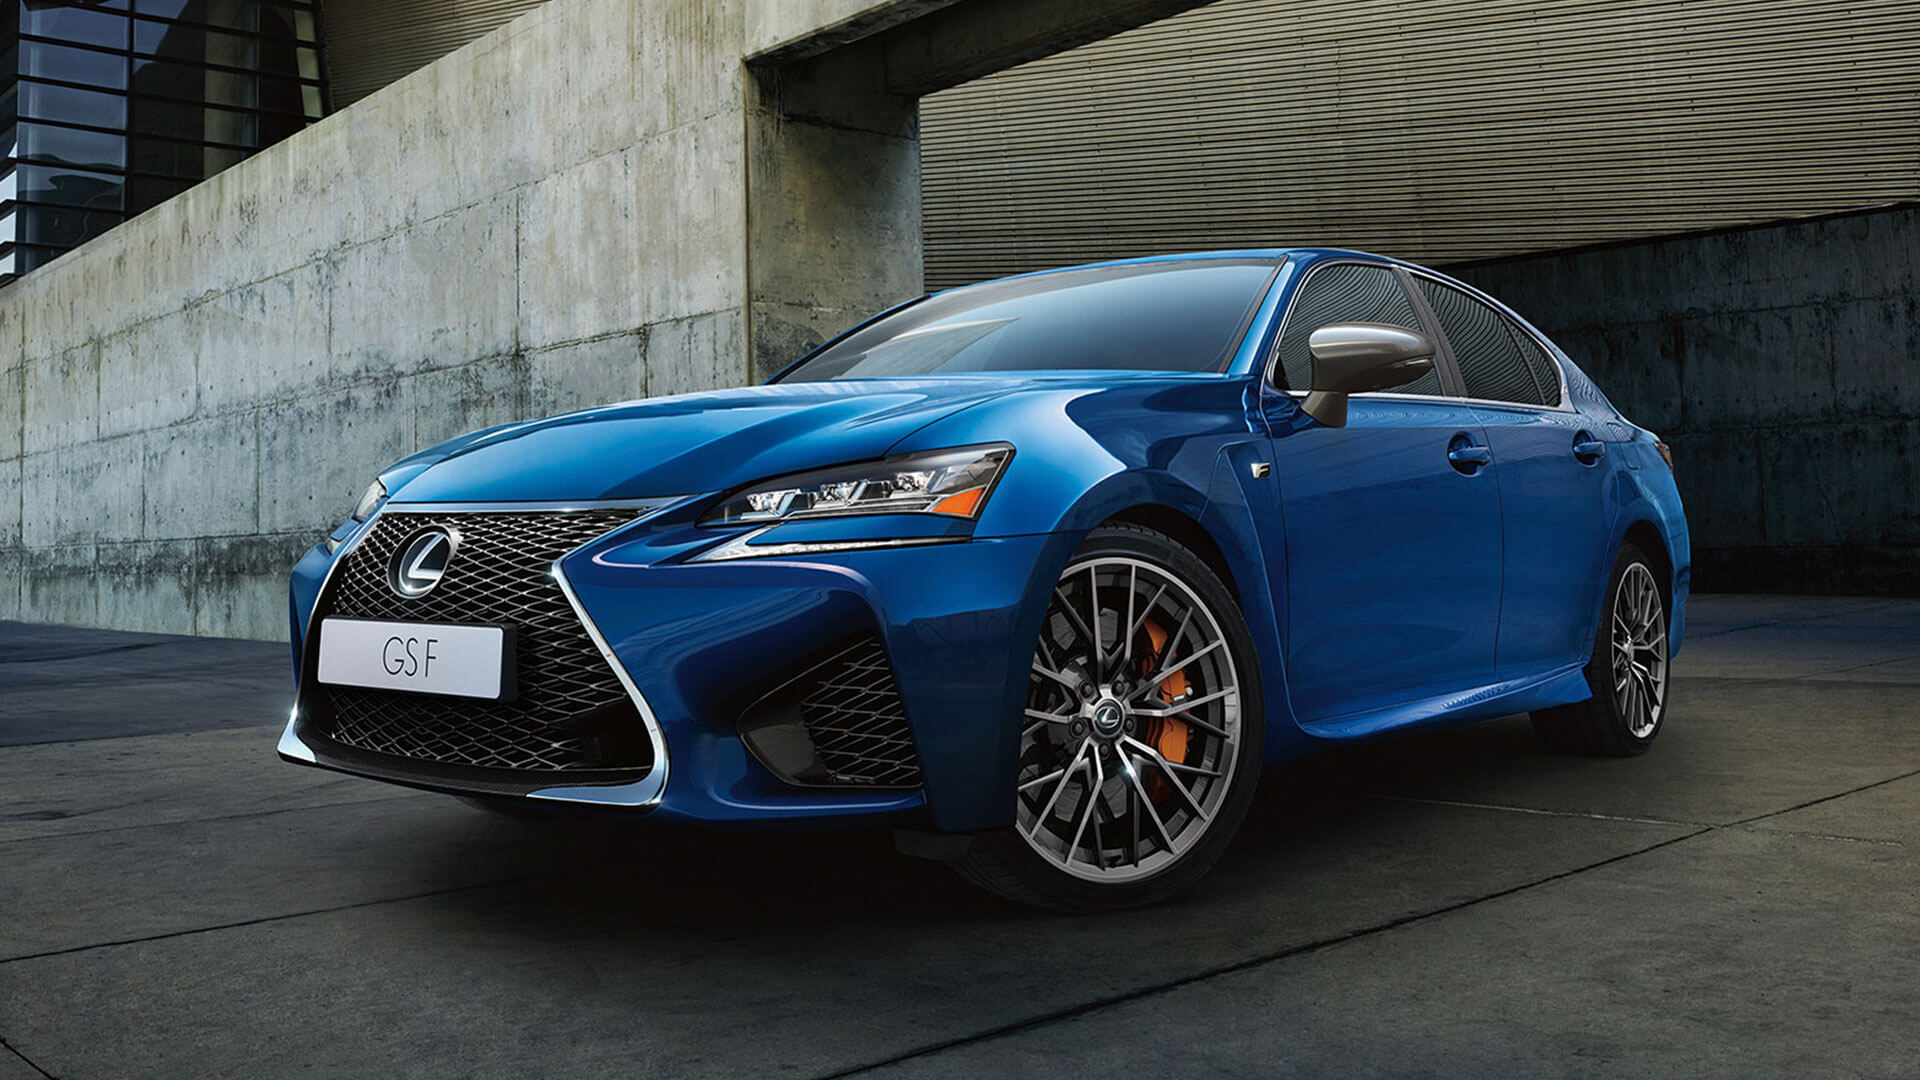 2017 lexus gs f next steps personalise